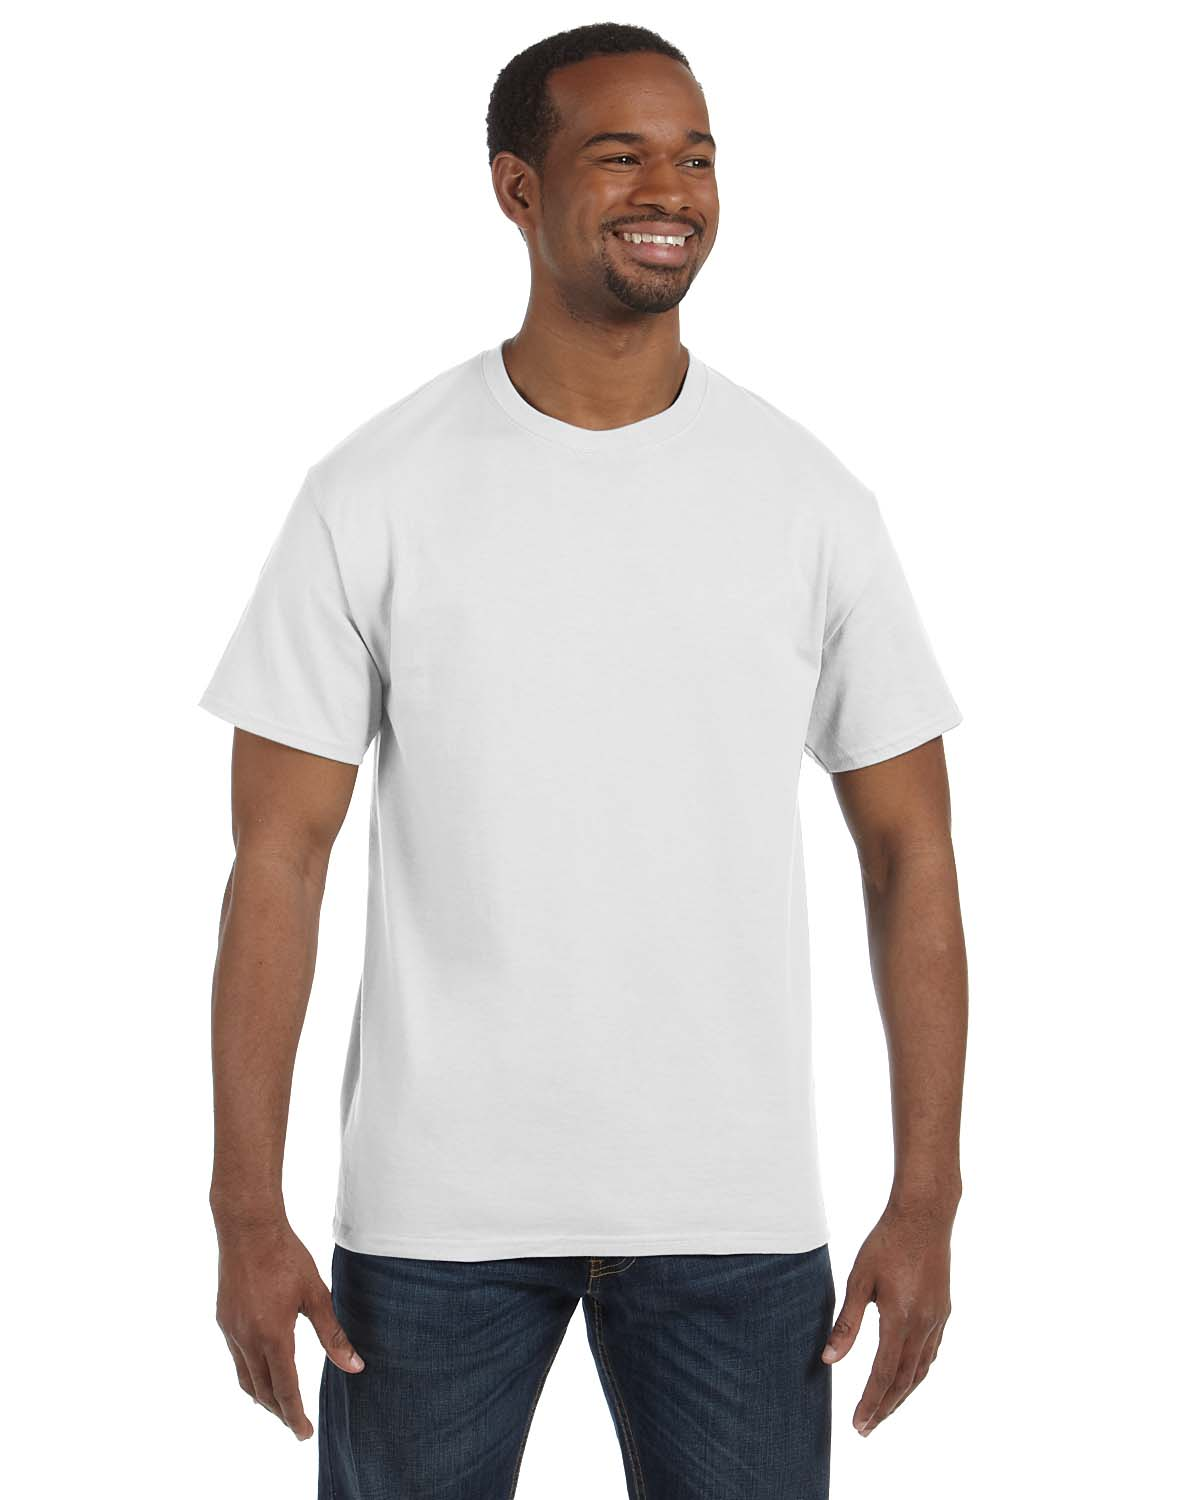 20e9024e Gildan G500 Heavy Cotton 5.3 oz. Adult T-Shirt - Shirtmax